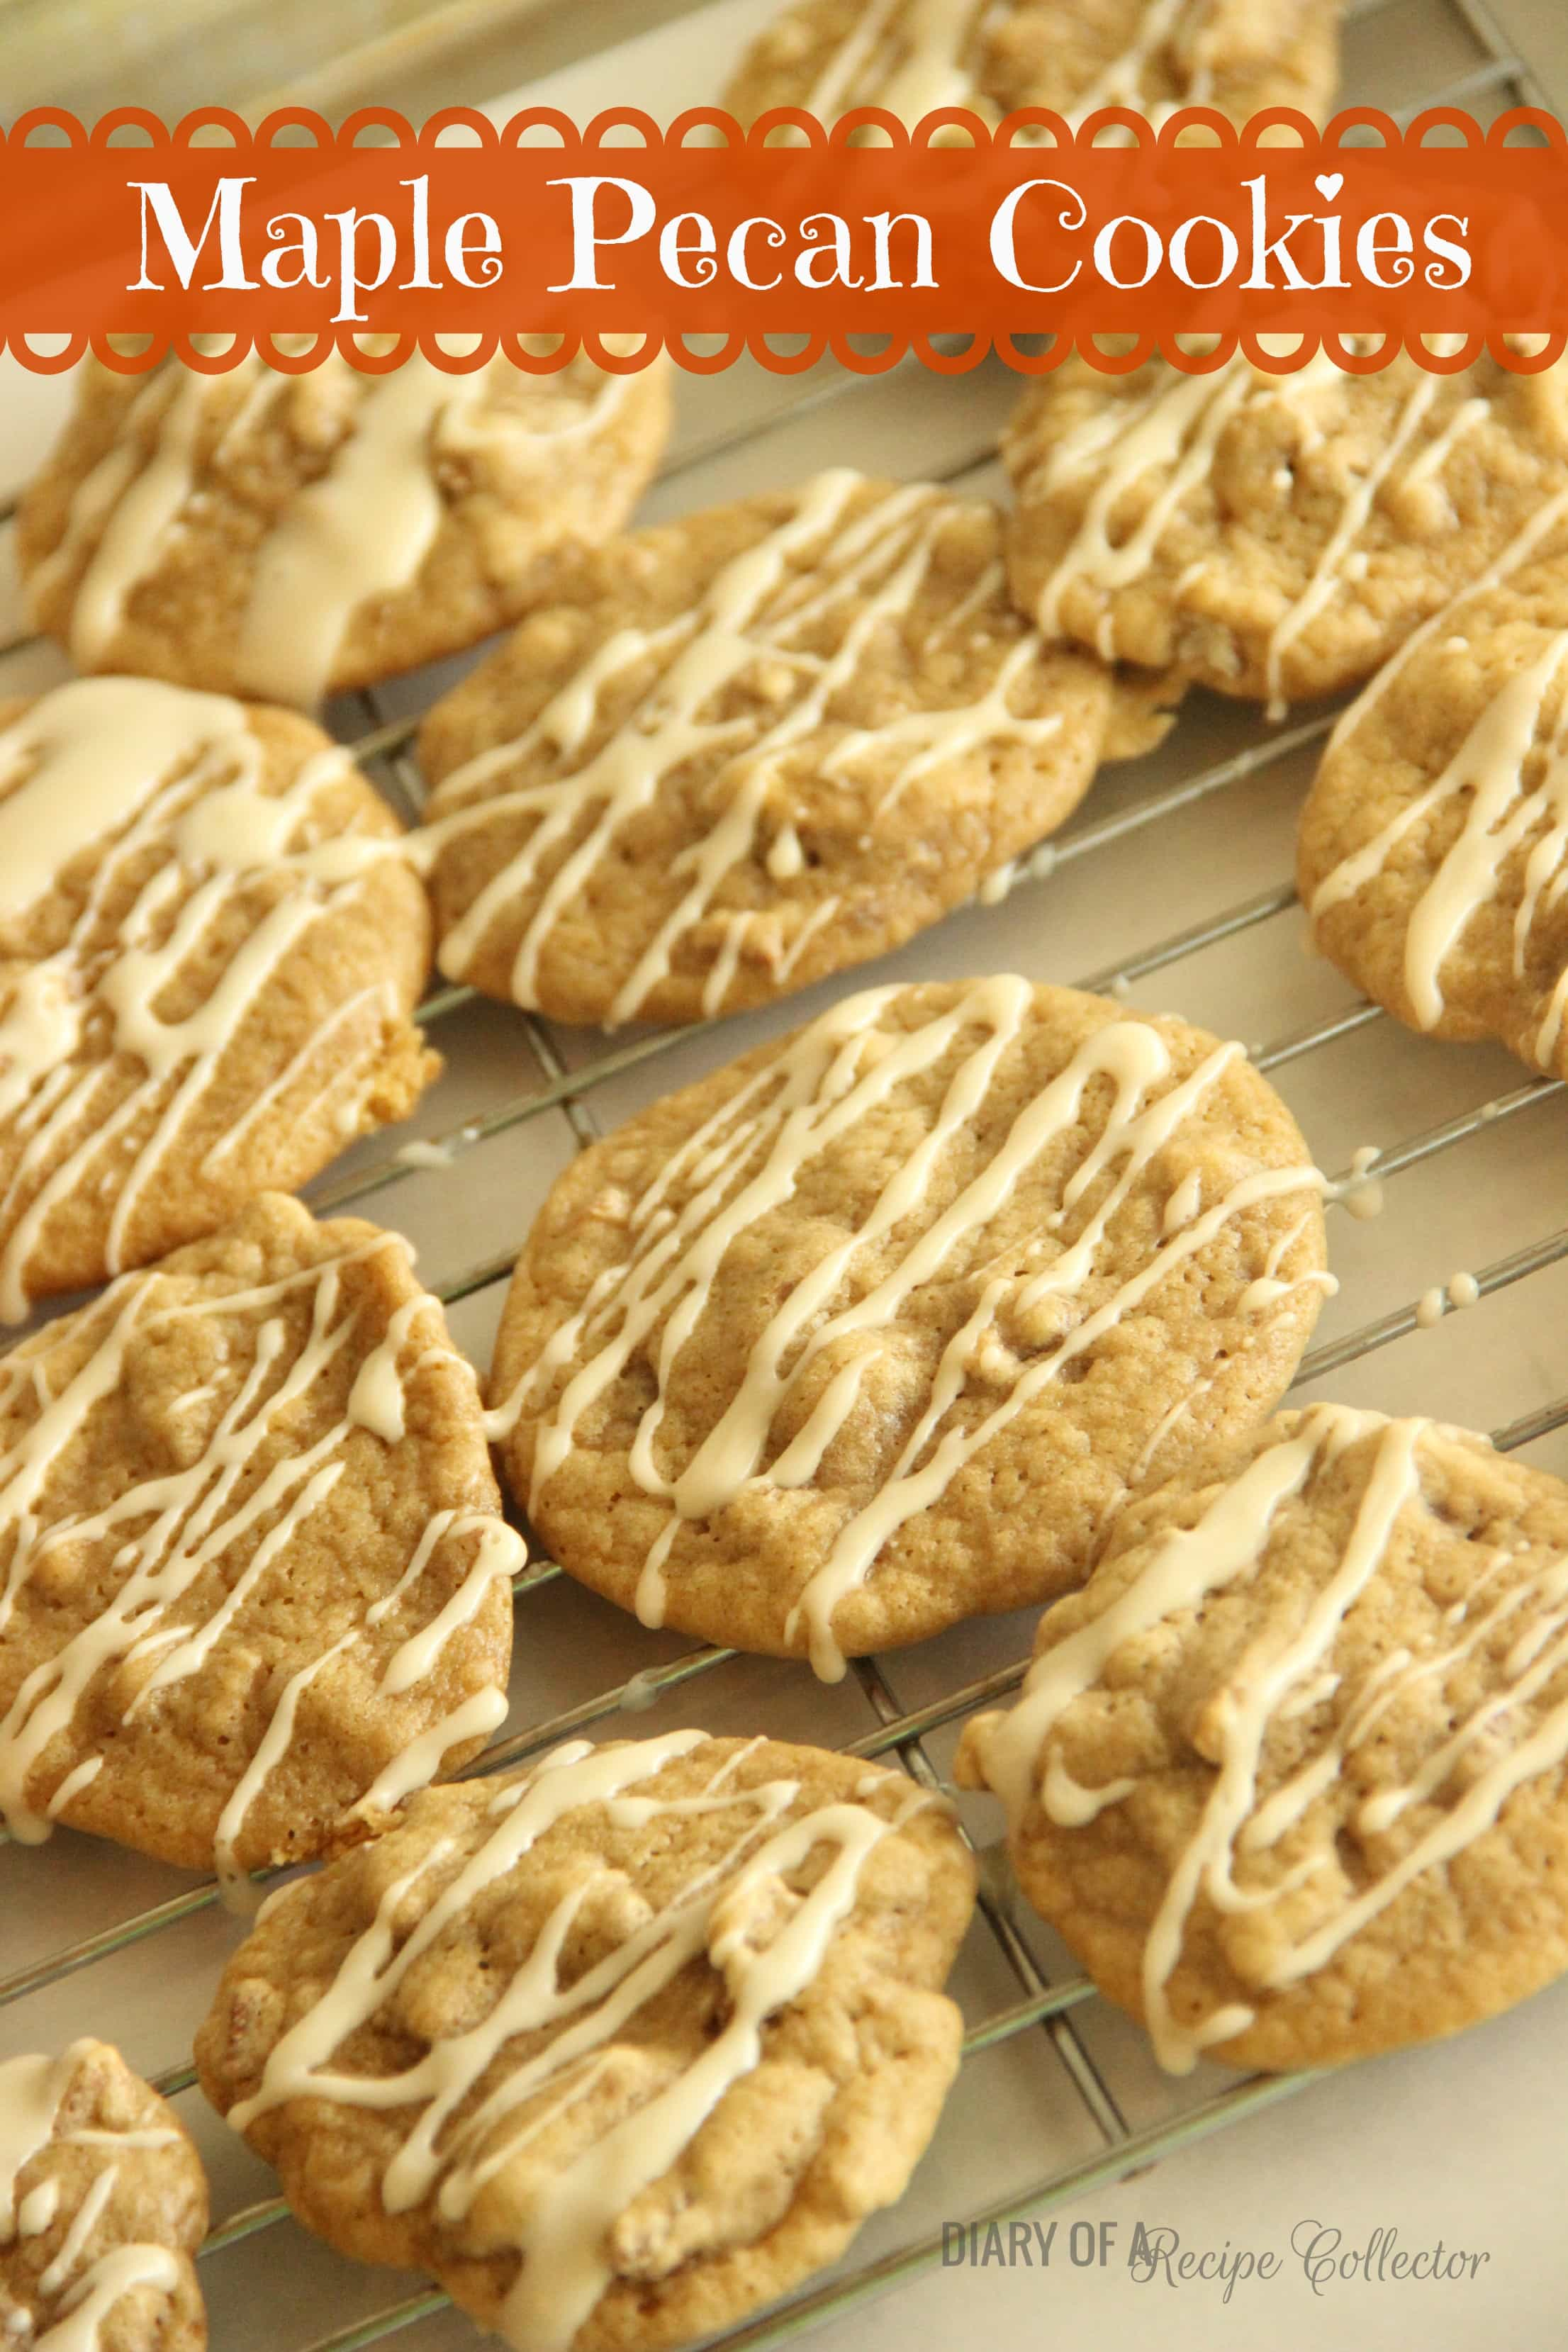 Dessert: Maple Pecan Cookies - Diary of a Recipe Collector